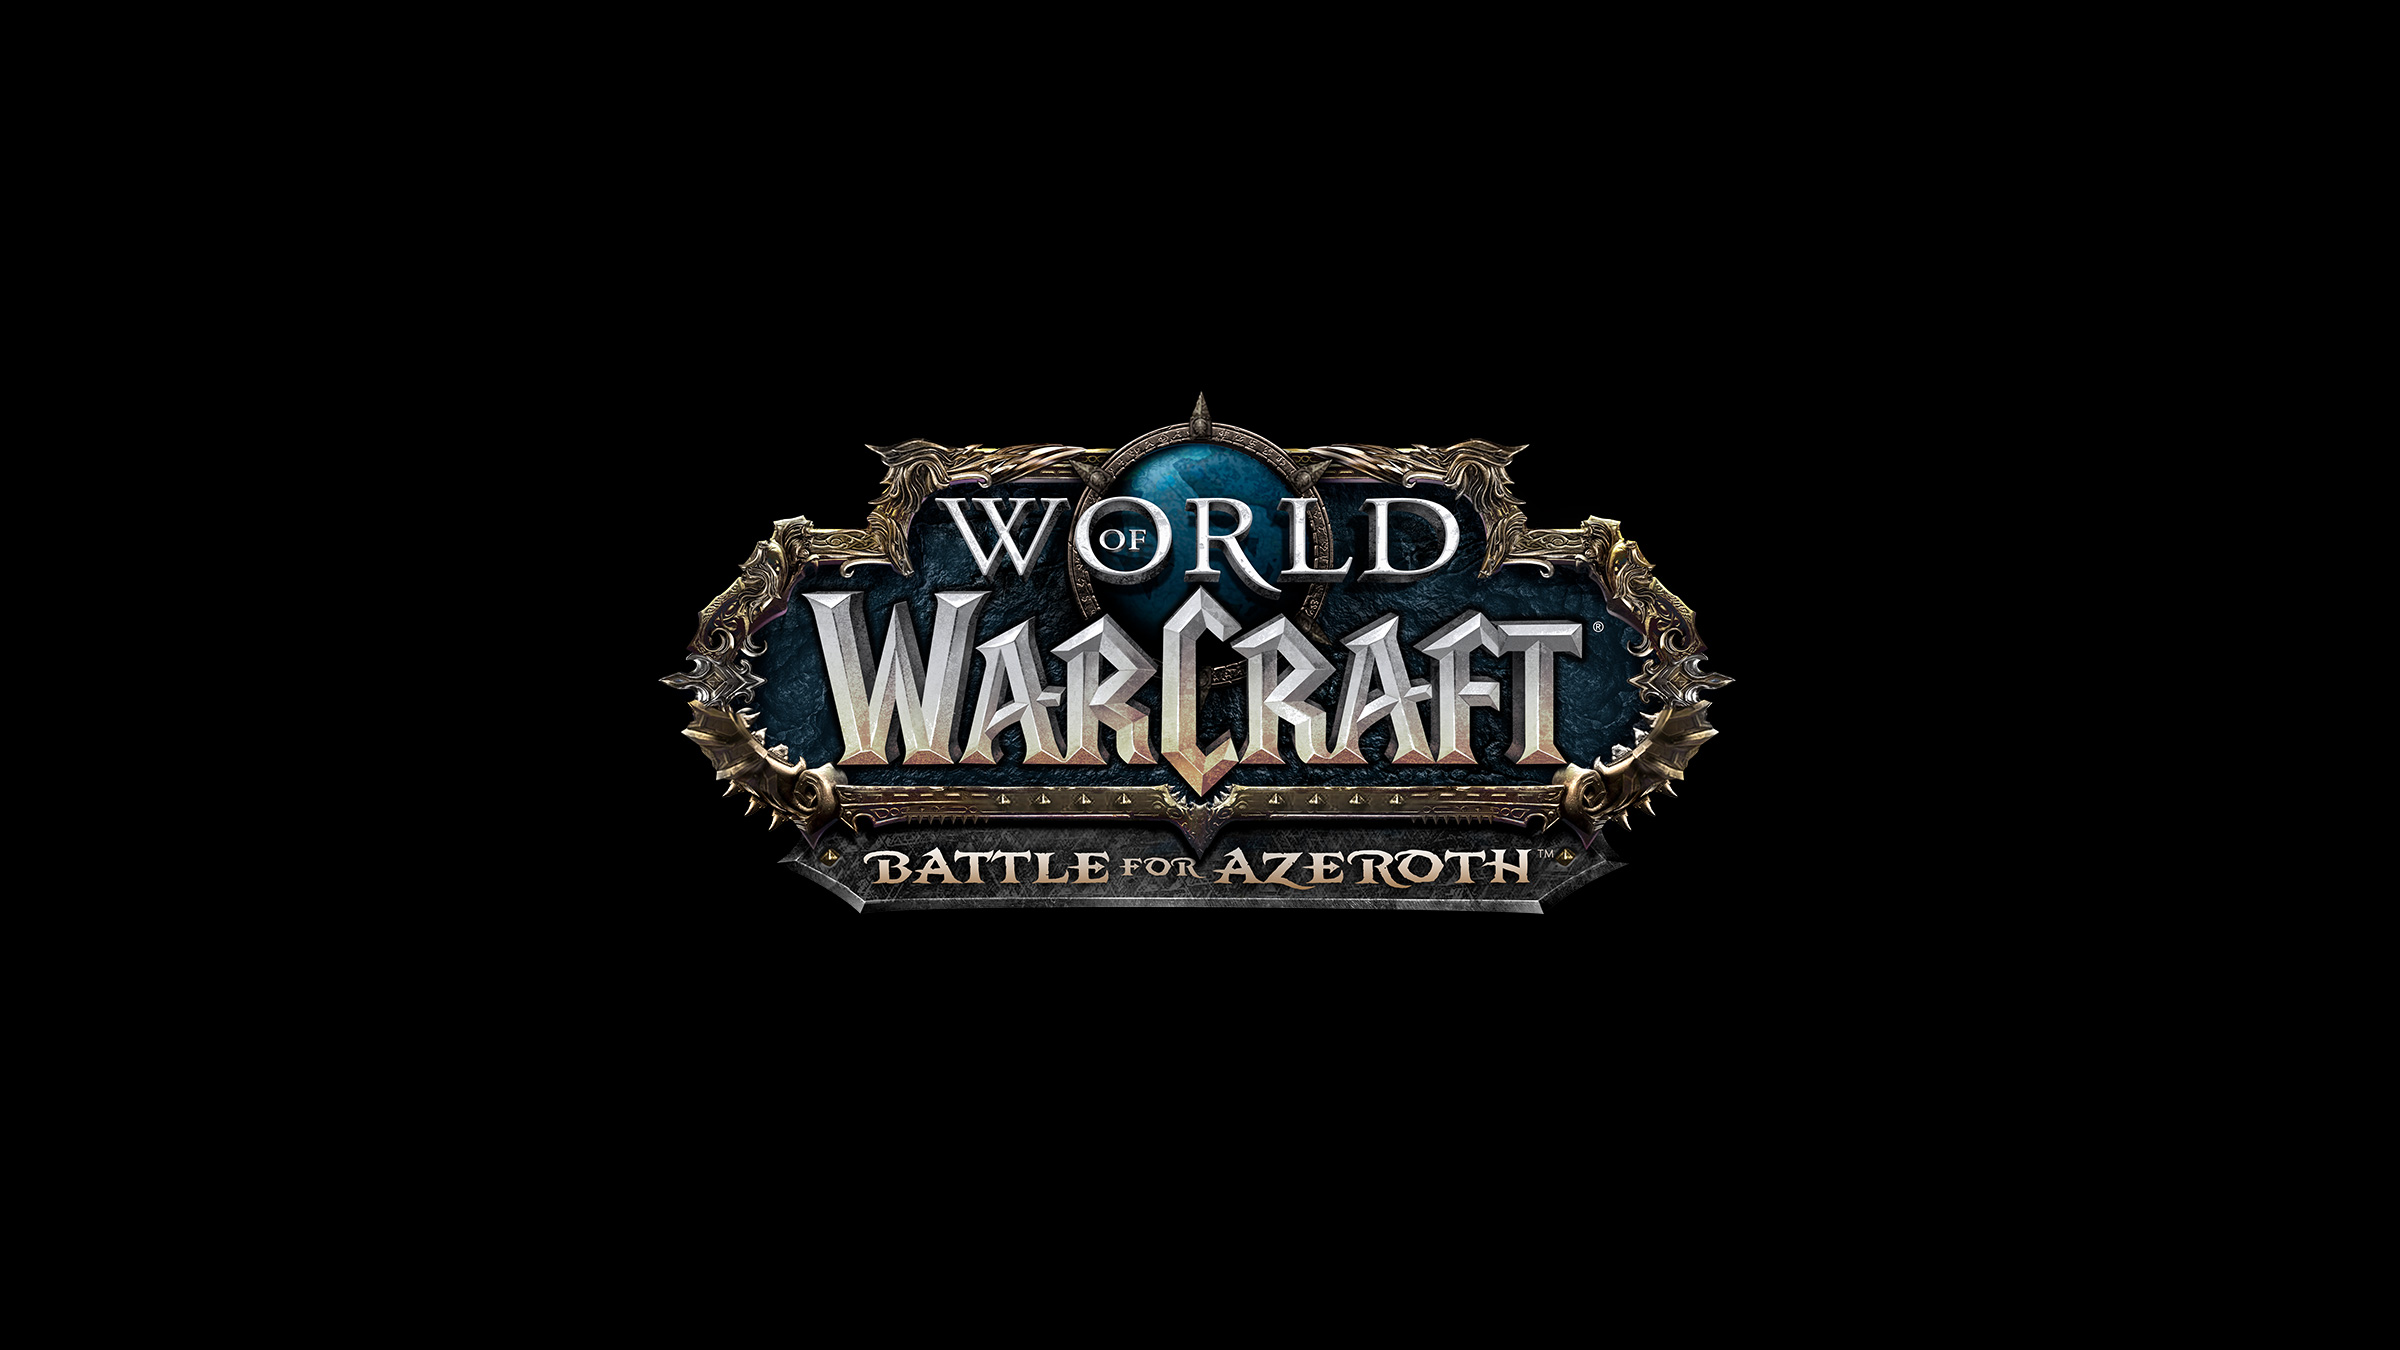 World of Warcraft at BlizzCon 2017